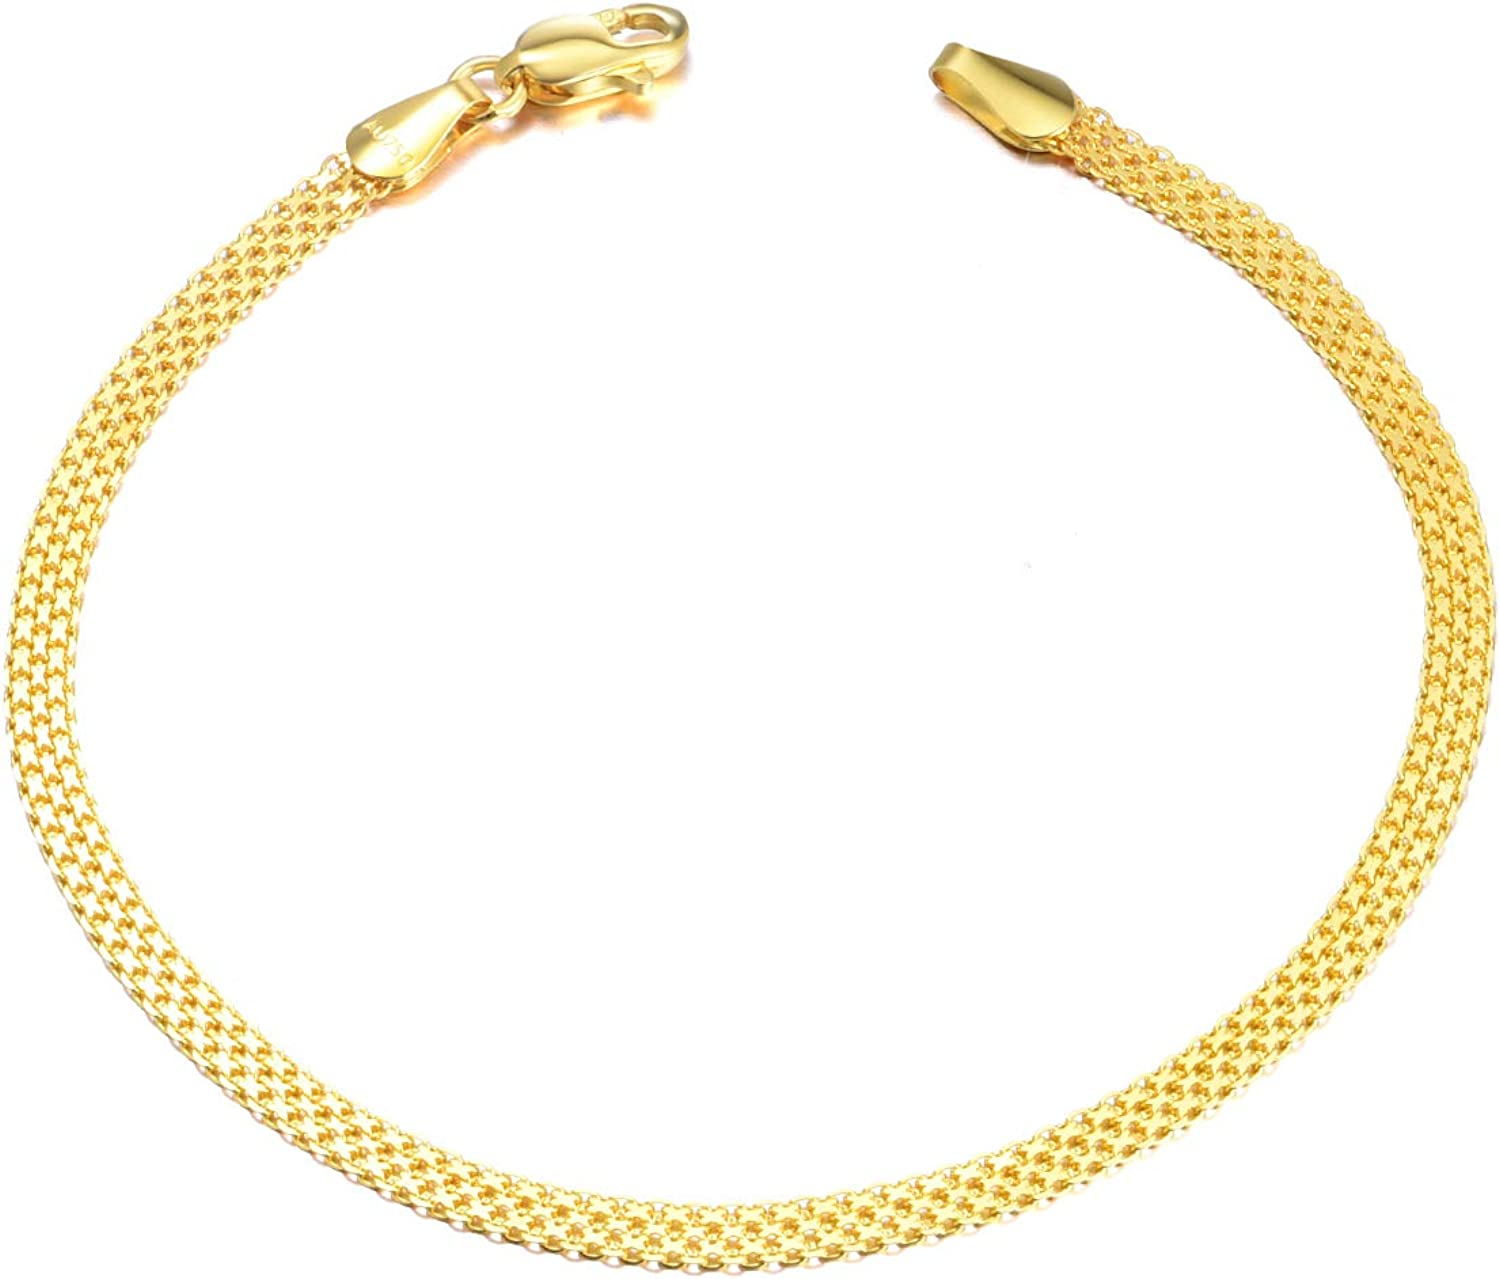 Solid 18k New product! New type Max 63% OFF Gold Italian Mesh Link Bracelets Fine Women Chain for